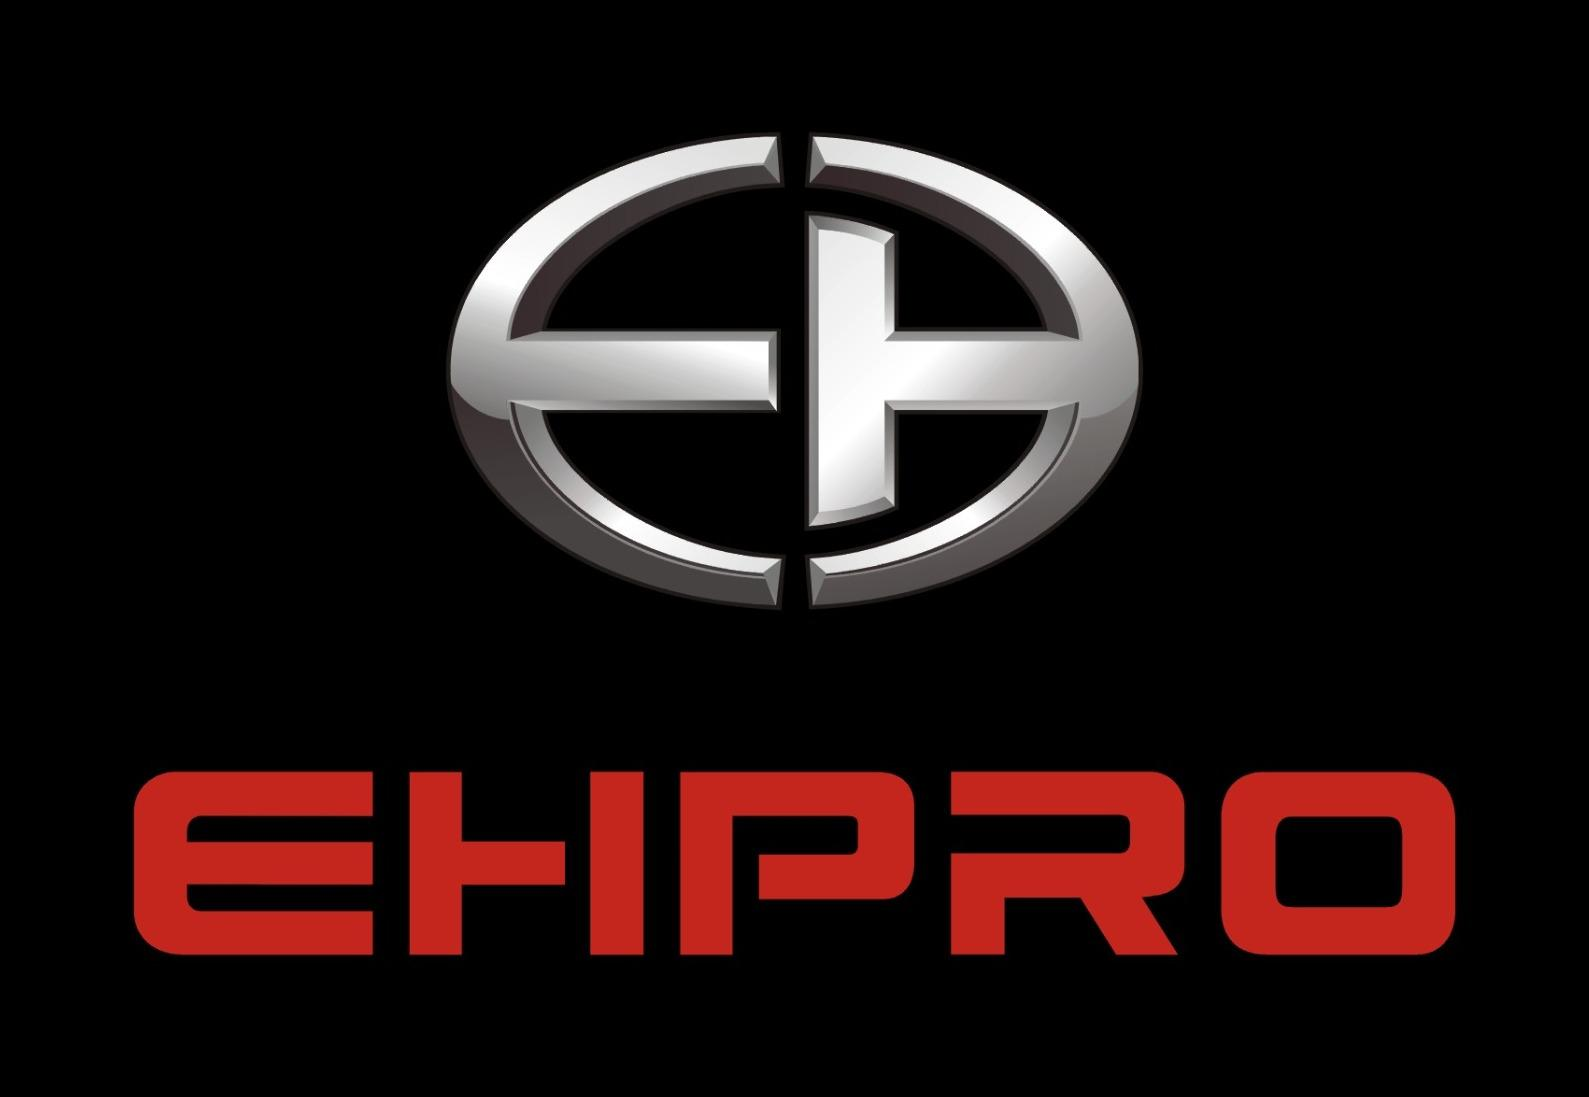 Ehpro Discounts